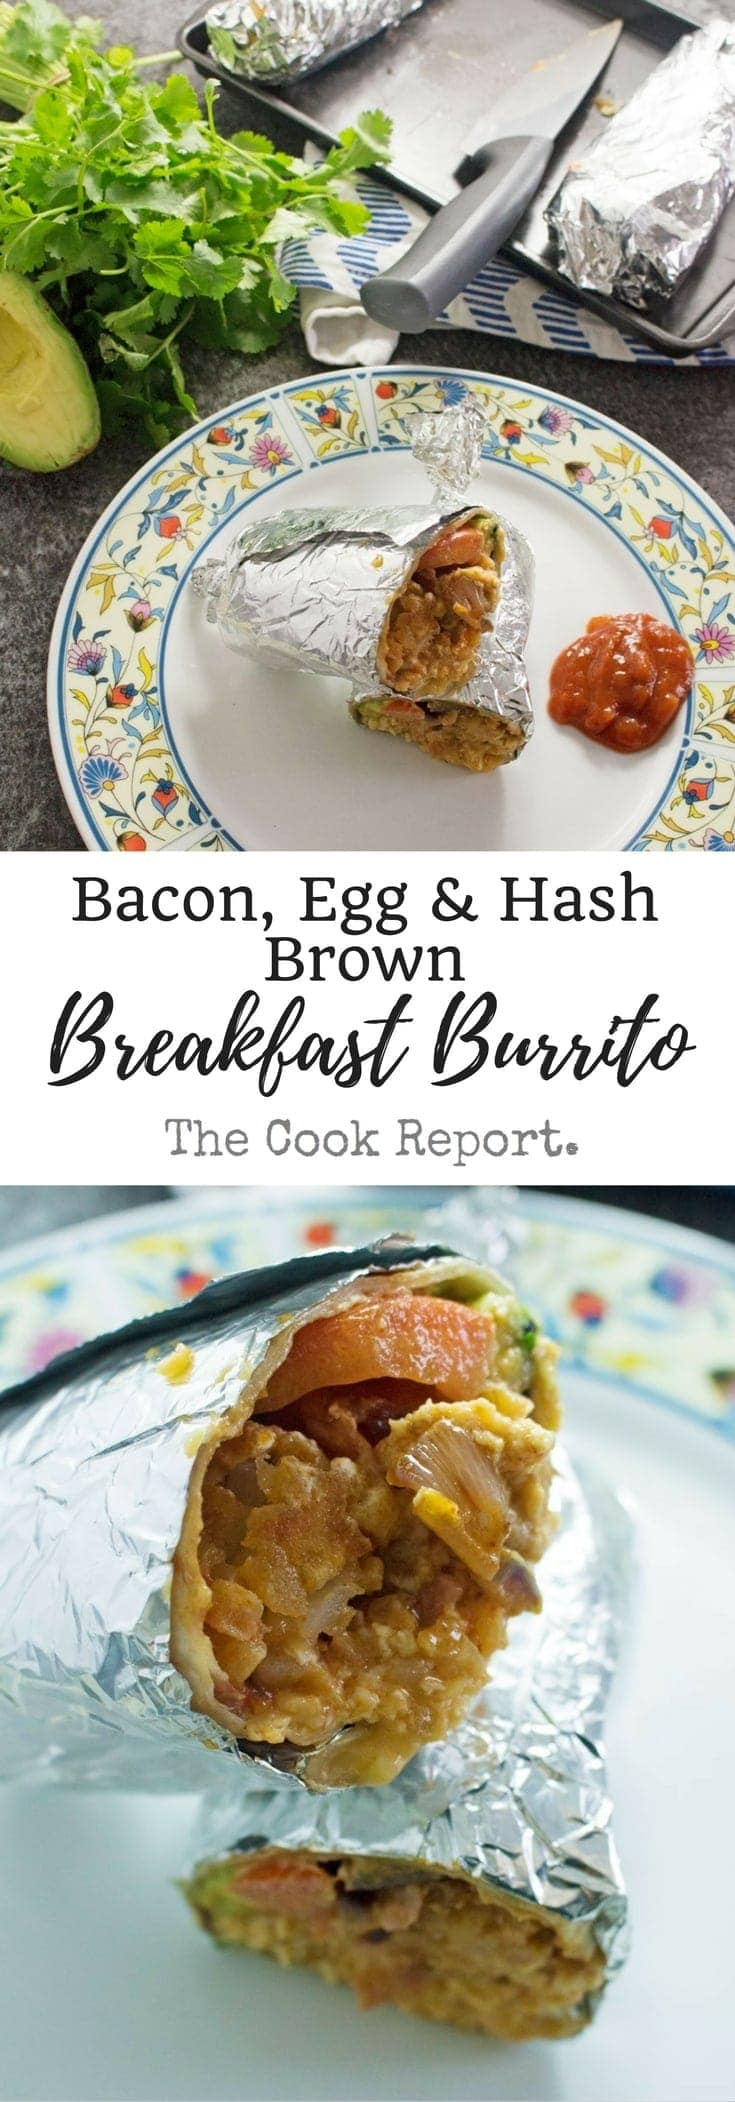 These breakfast burritos stuffed with bacon, egg and hash browns give you the perfect start to the day! They're an impressive but easy to make breakfast.